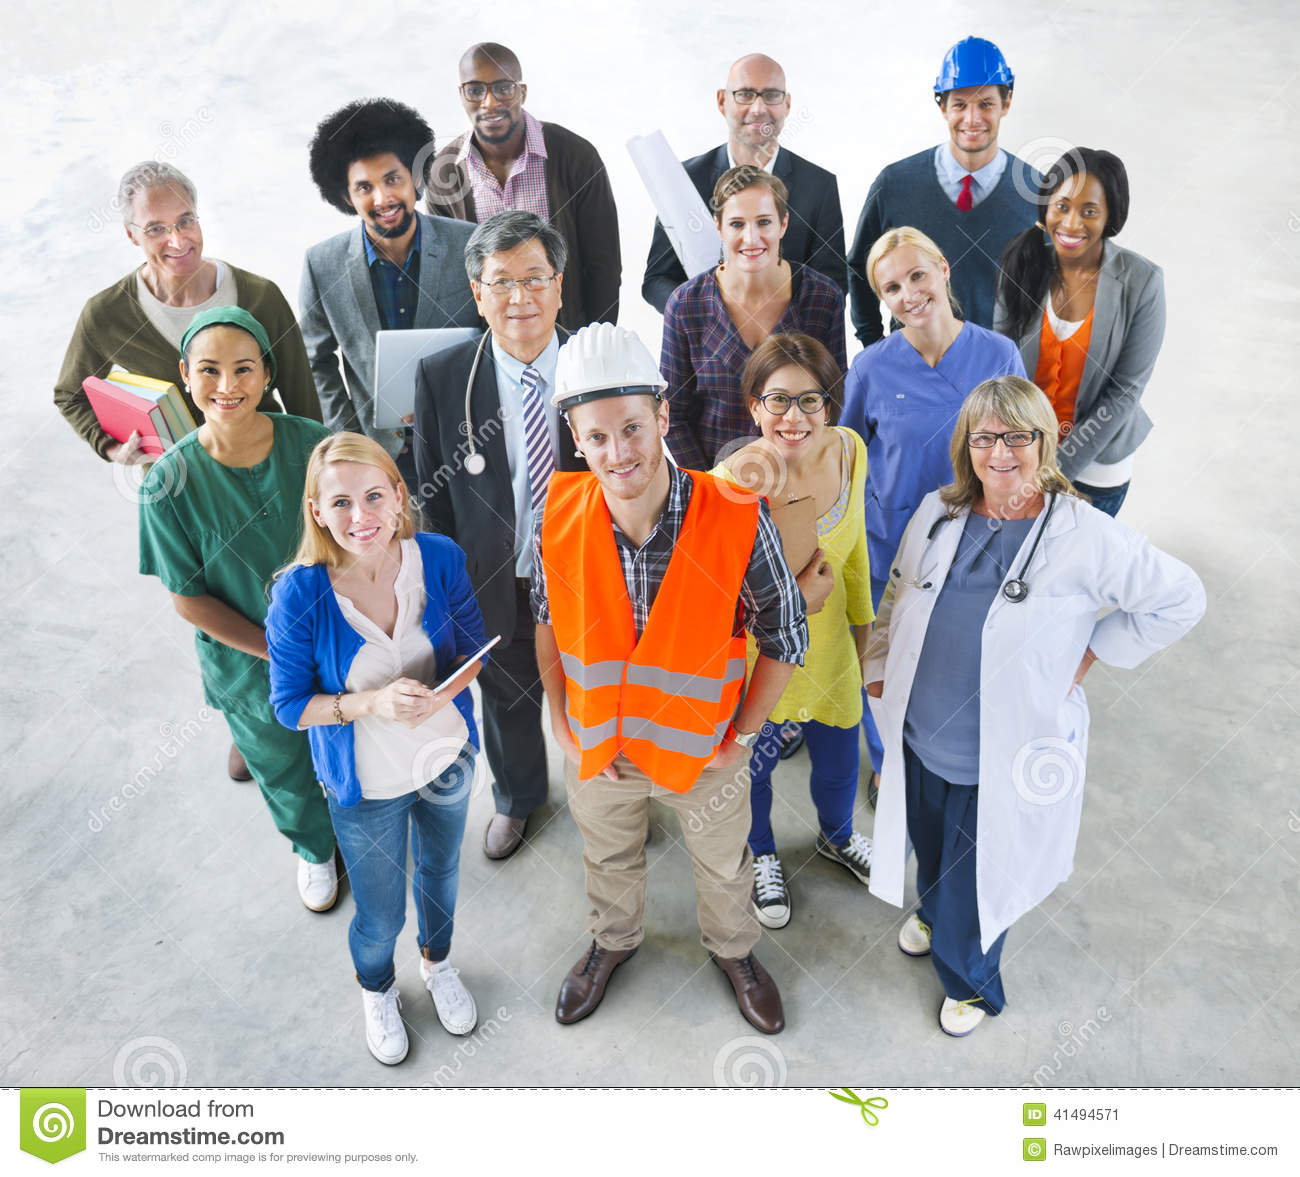 workers in the public sector workforce the older worker essay Both the public and private sector have embraced the information age with increasing dependence on a skilled and versatile workforce [tags: work workforce labor essays] powerful essays 3331 words | (95 pages) | preview.